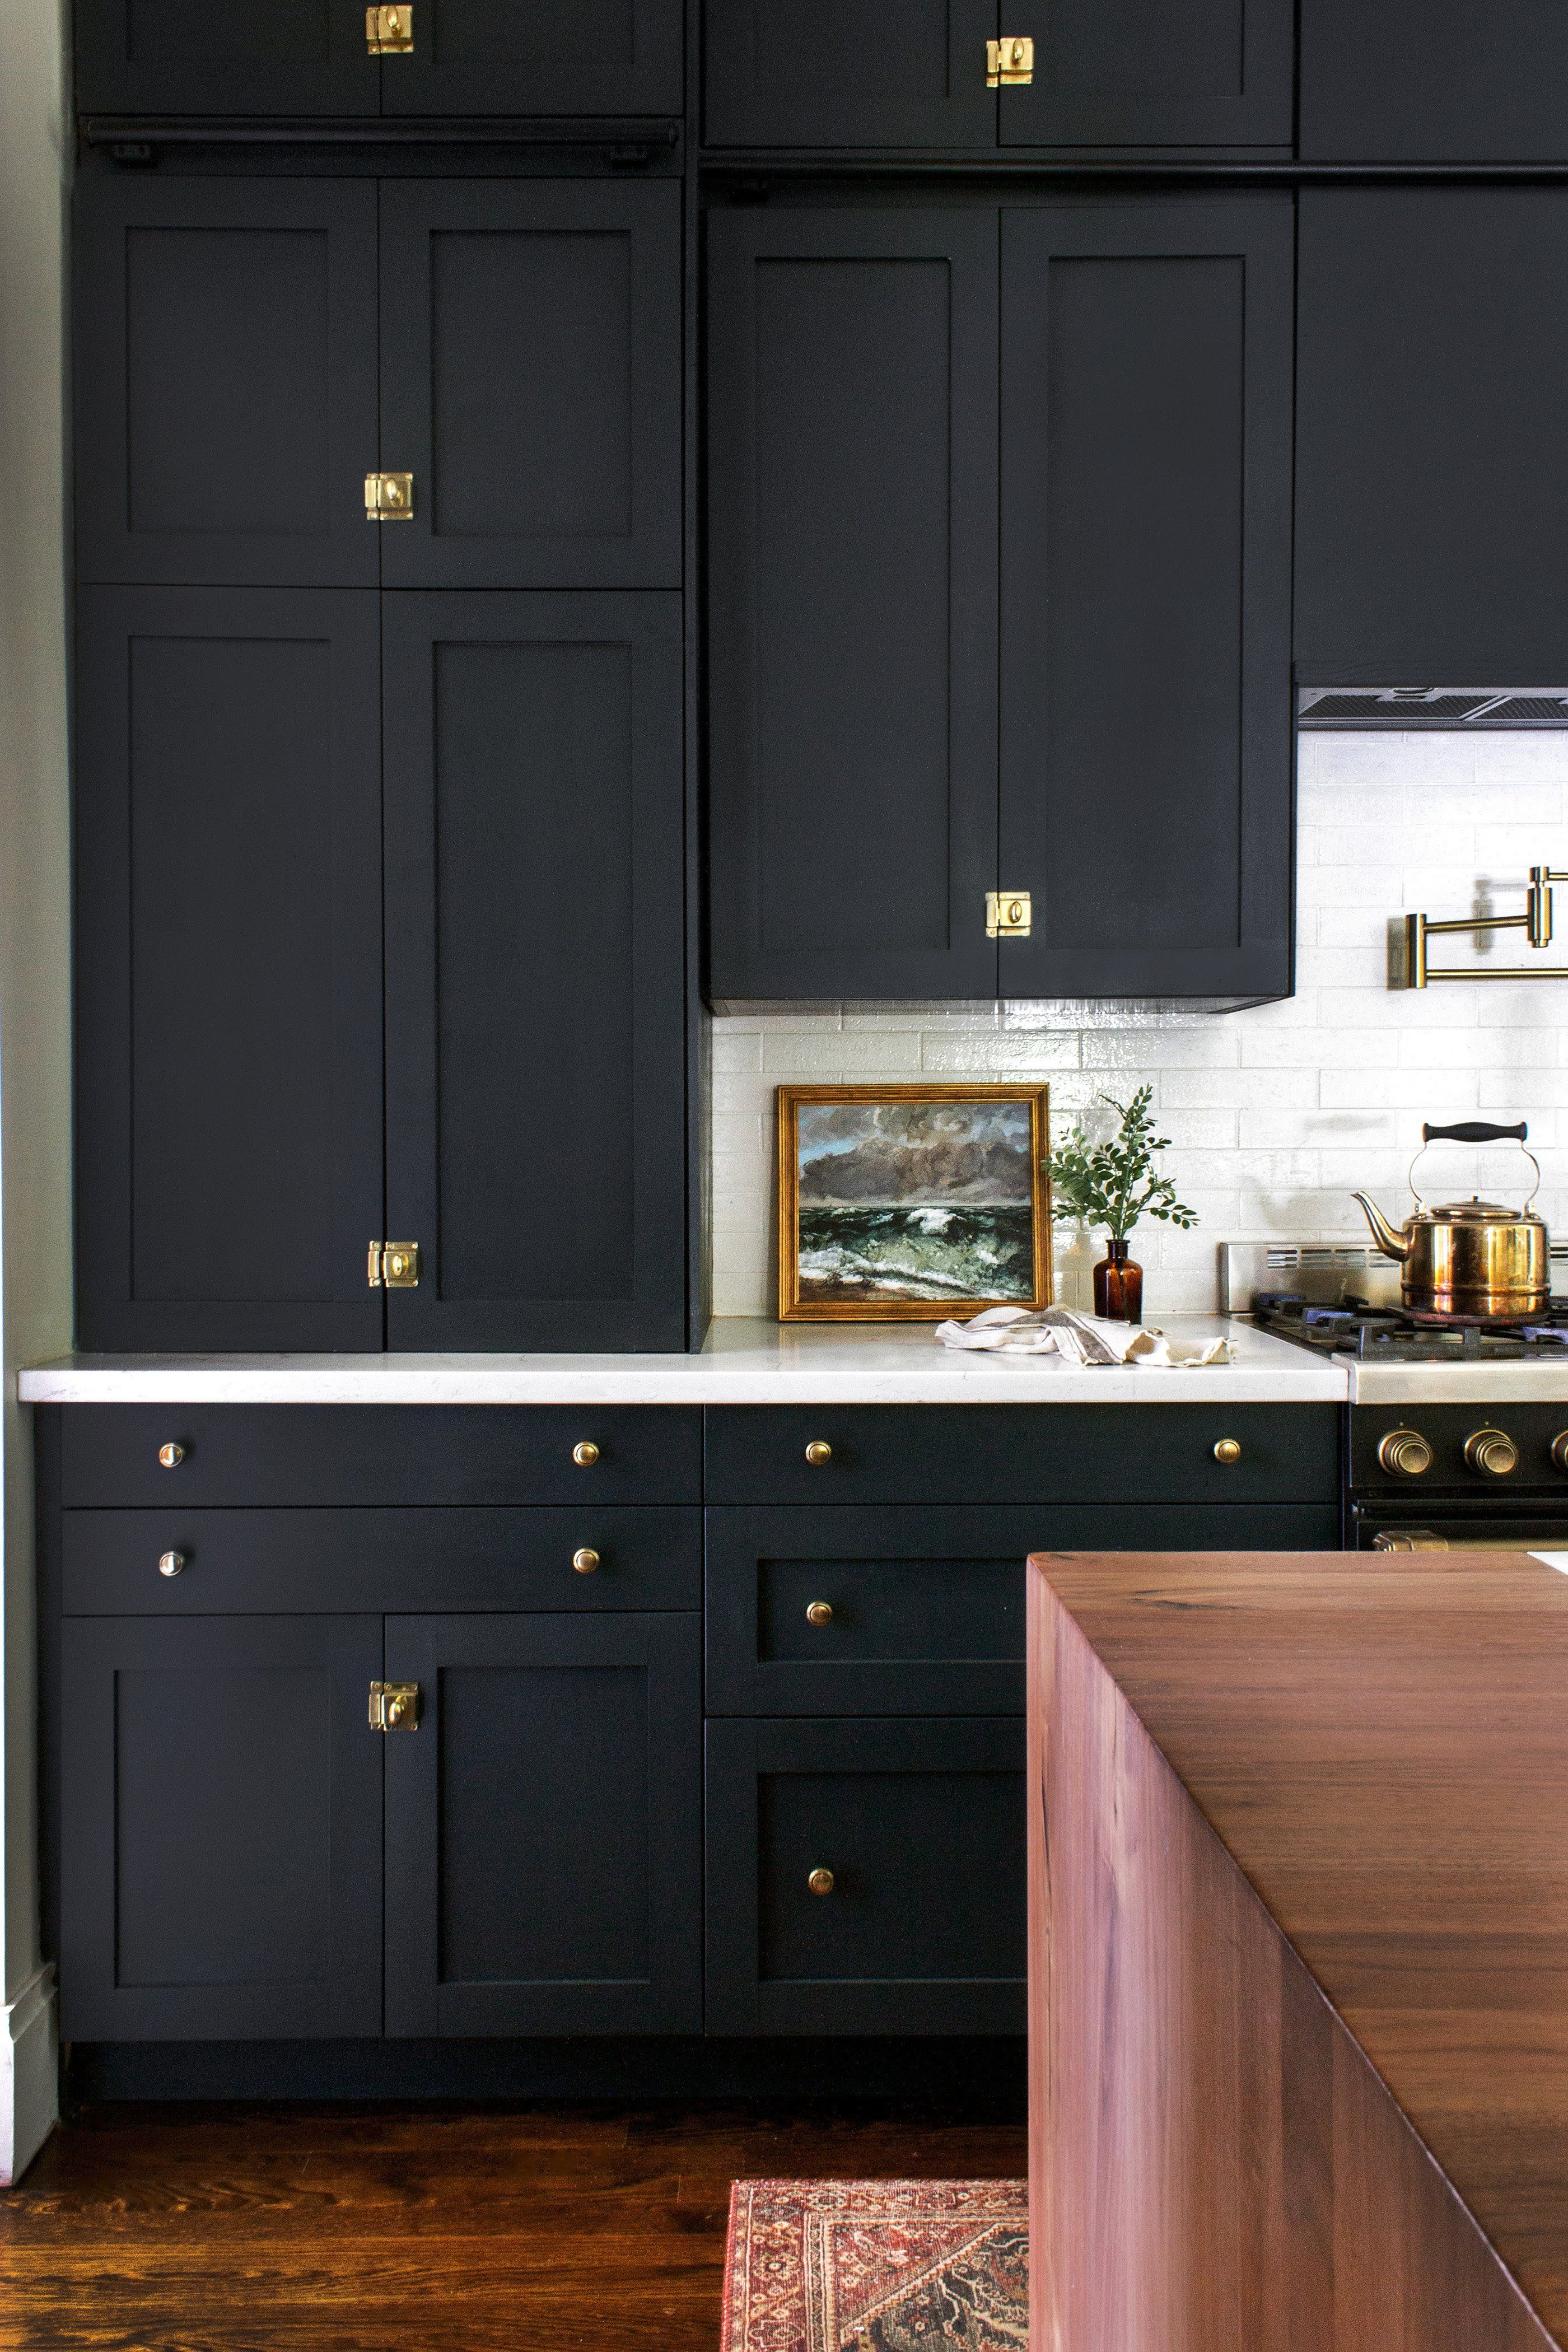 Brass Accents And Ebony Doors Make For A Darkly Dramatic Kitchen